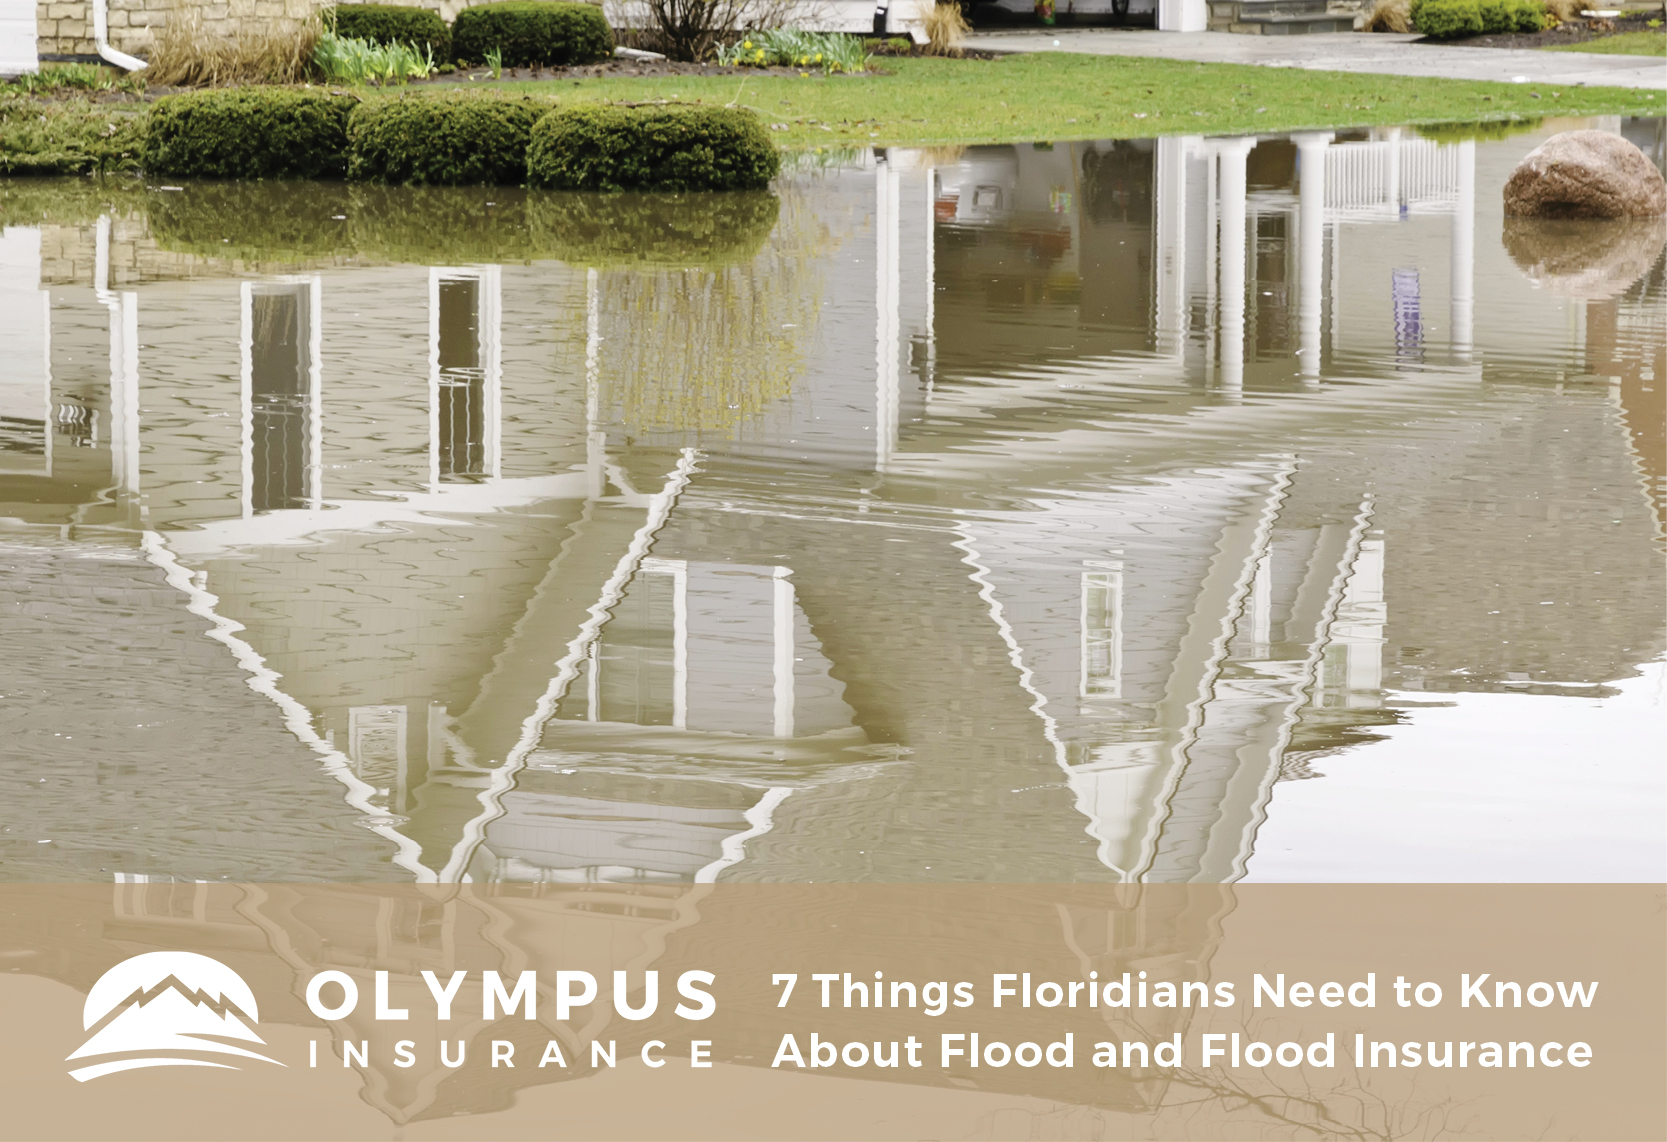 7 Things Floridians Need to Know About Flood and Flood Insurance